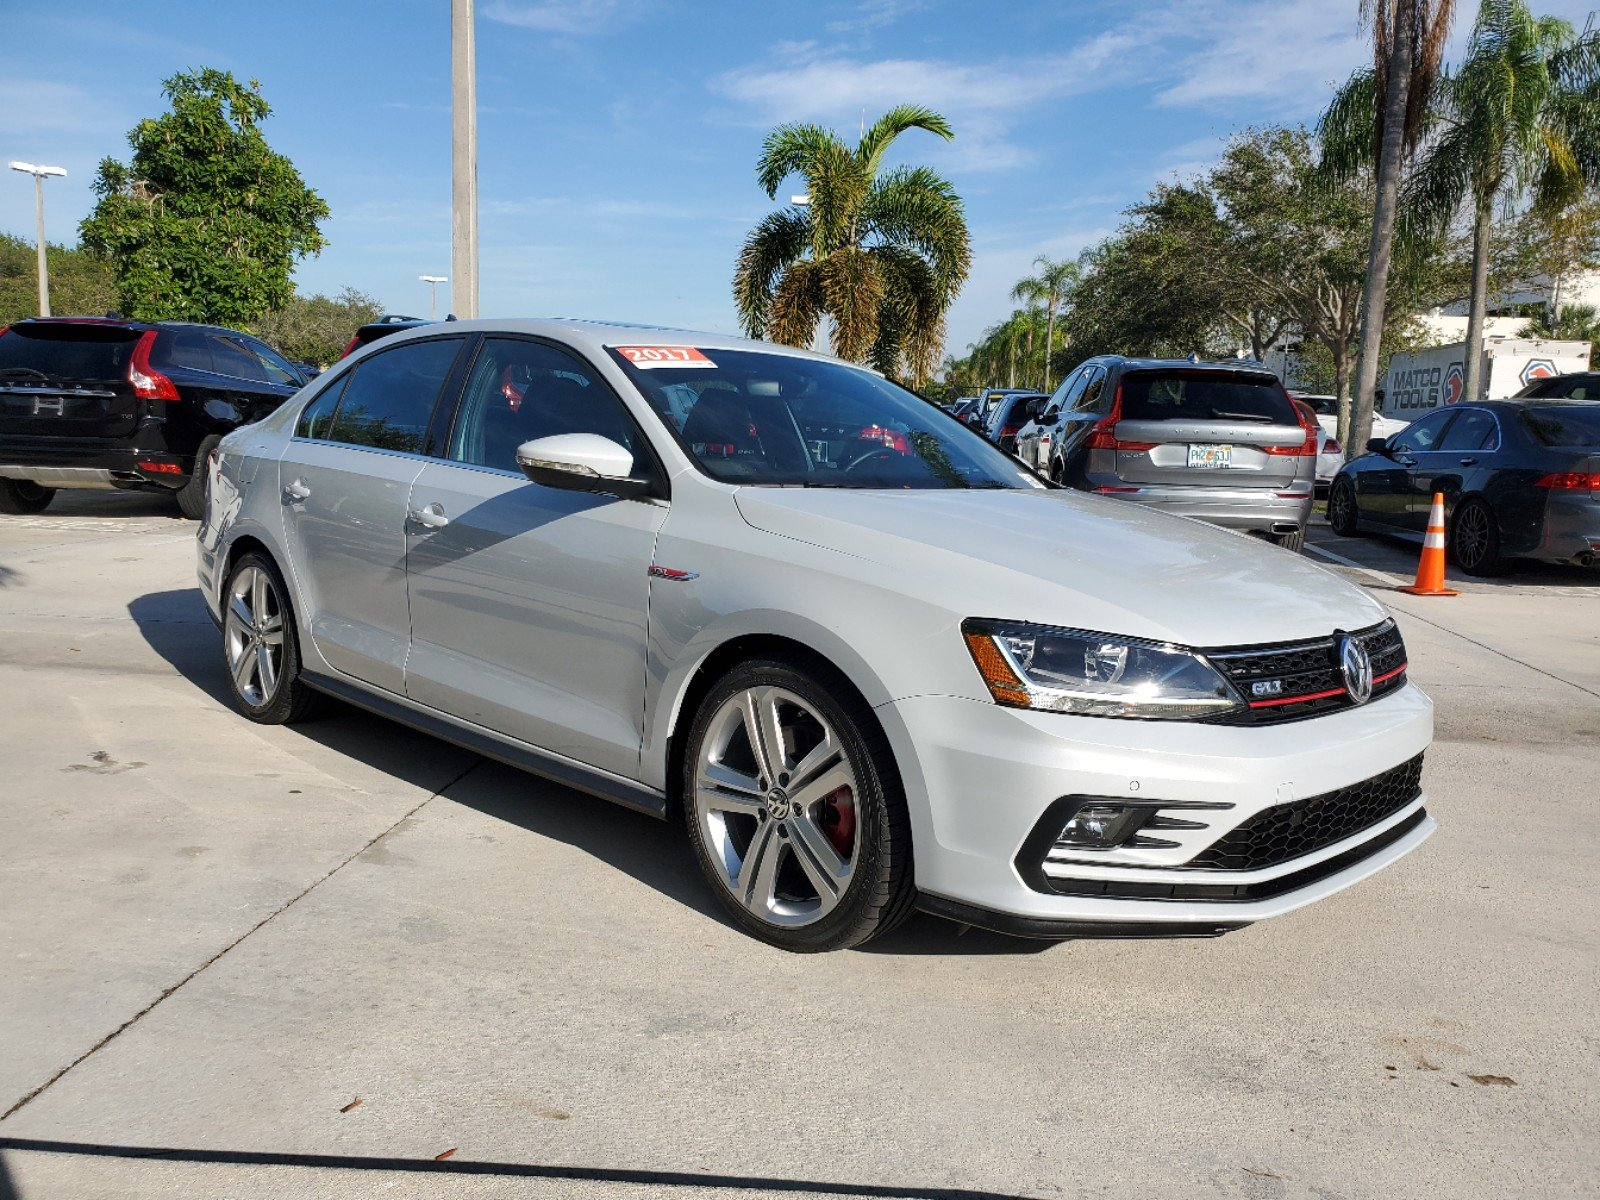 Certified Pre-Owned 2017 Volkswagen GLI w/ DSG Automatic Transmission